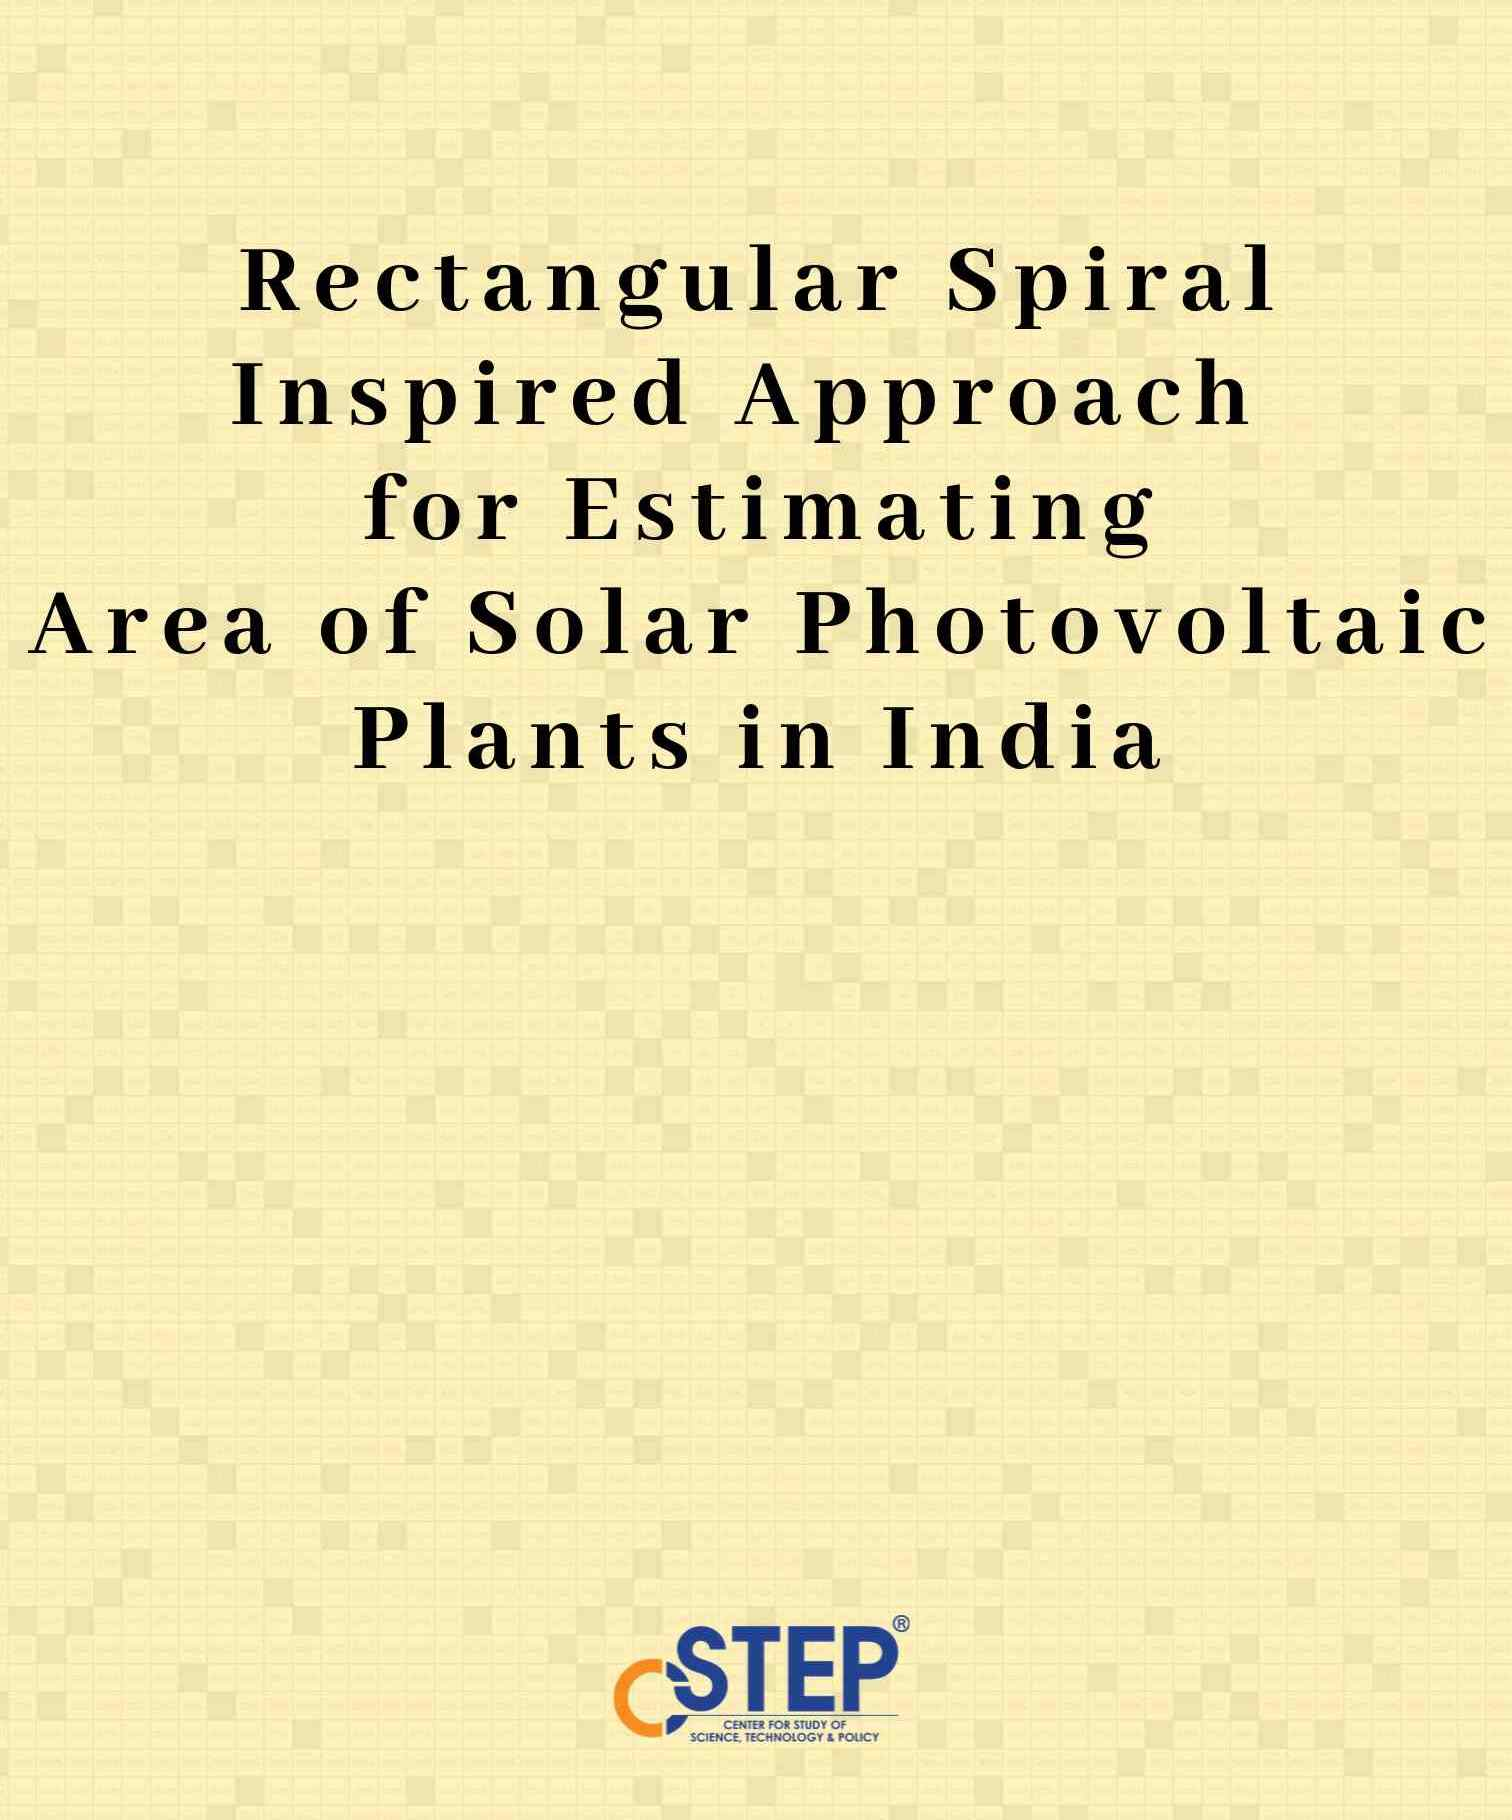 Rectangular Spiral Inspired Approach for Estimating Area of Solar Photovoltaic Plants in India